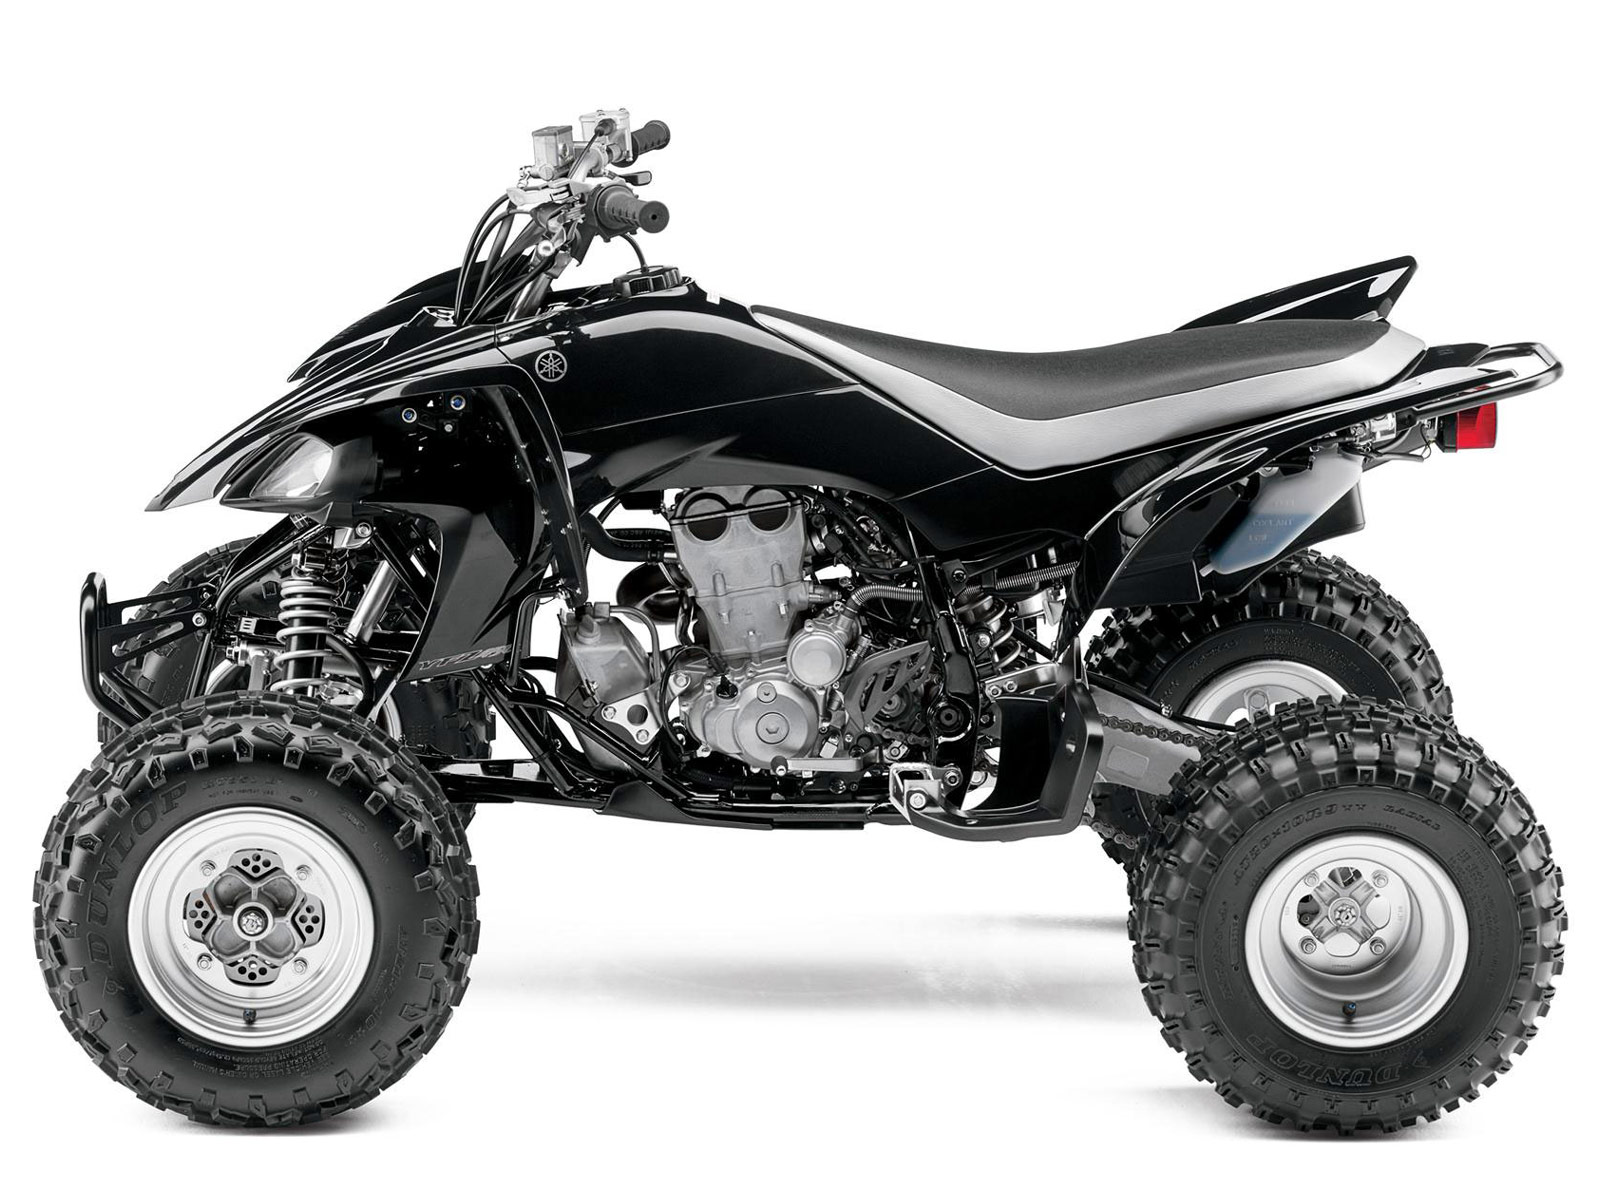 2013 Yamaha Raptor YFZ450 Insurance Information